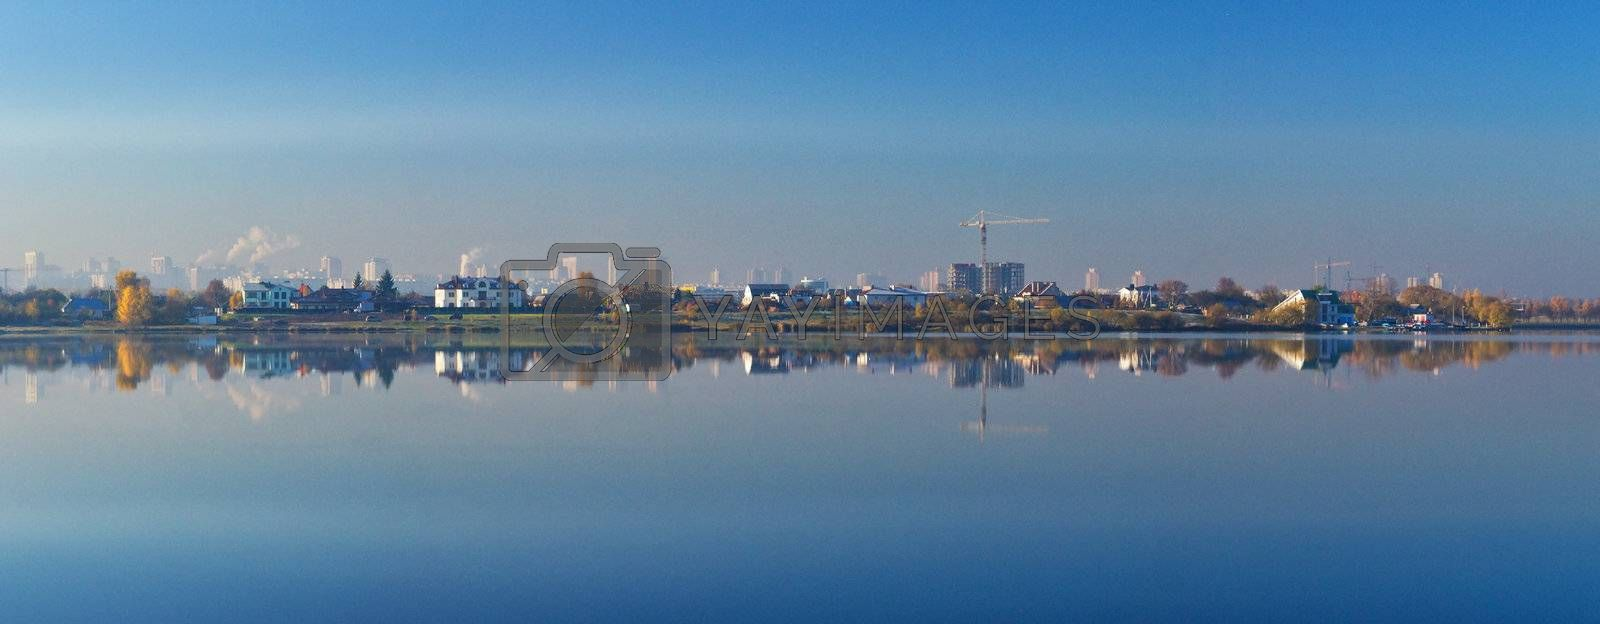 panorama of reflecting city by Alekcey